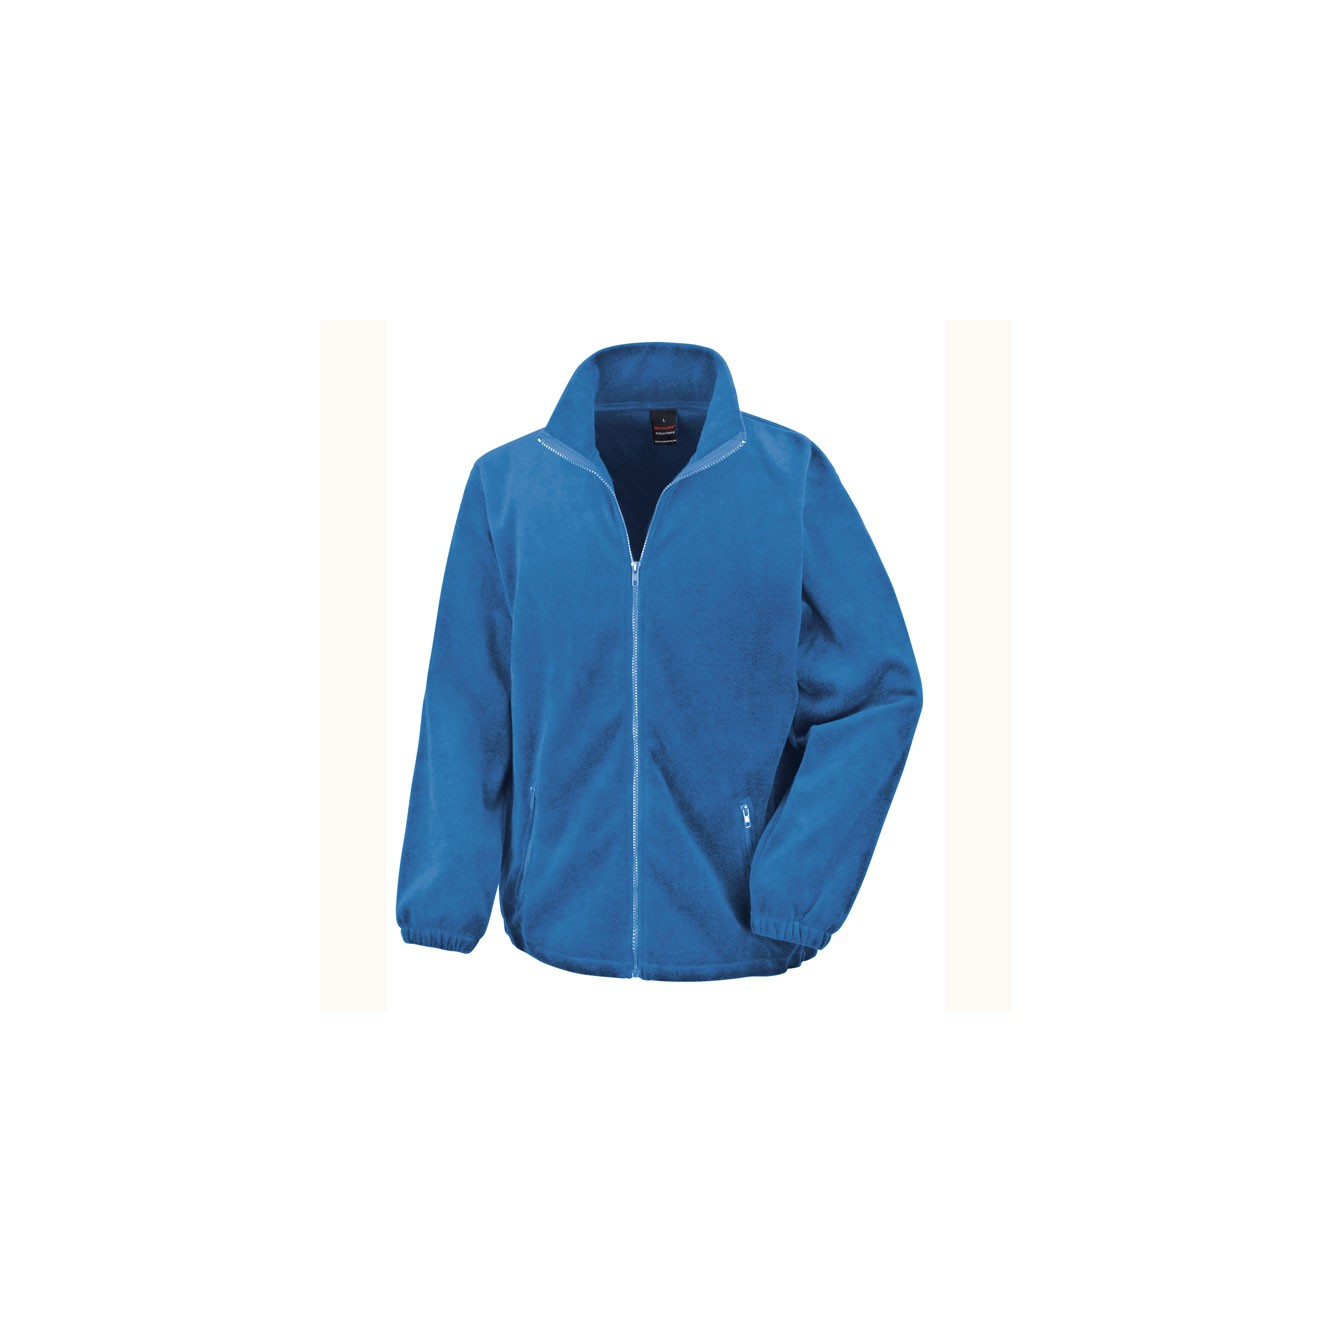 Fashion Fit Outdoor Fleece Jacket